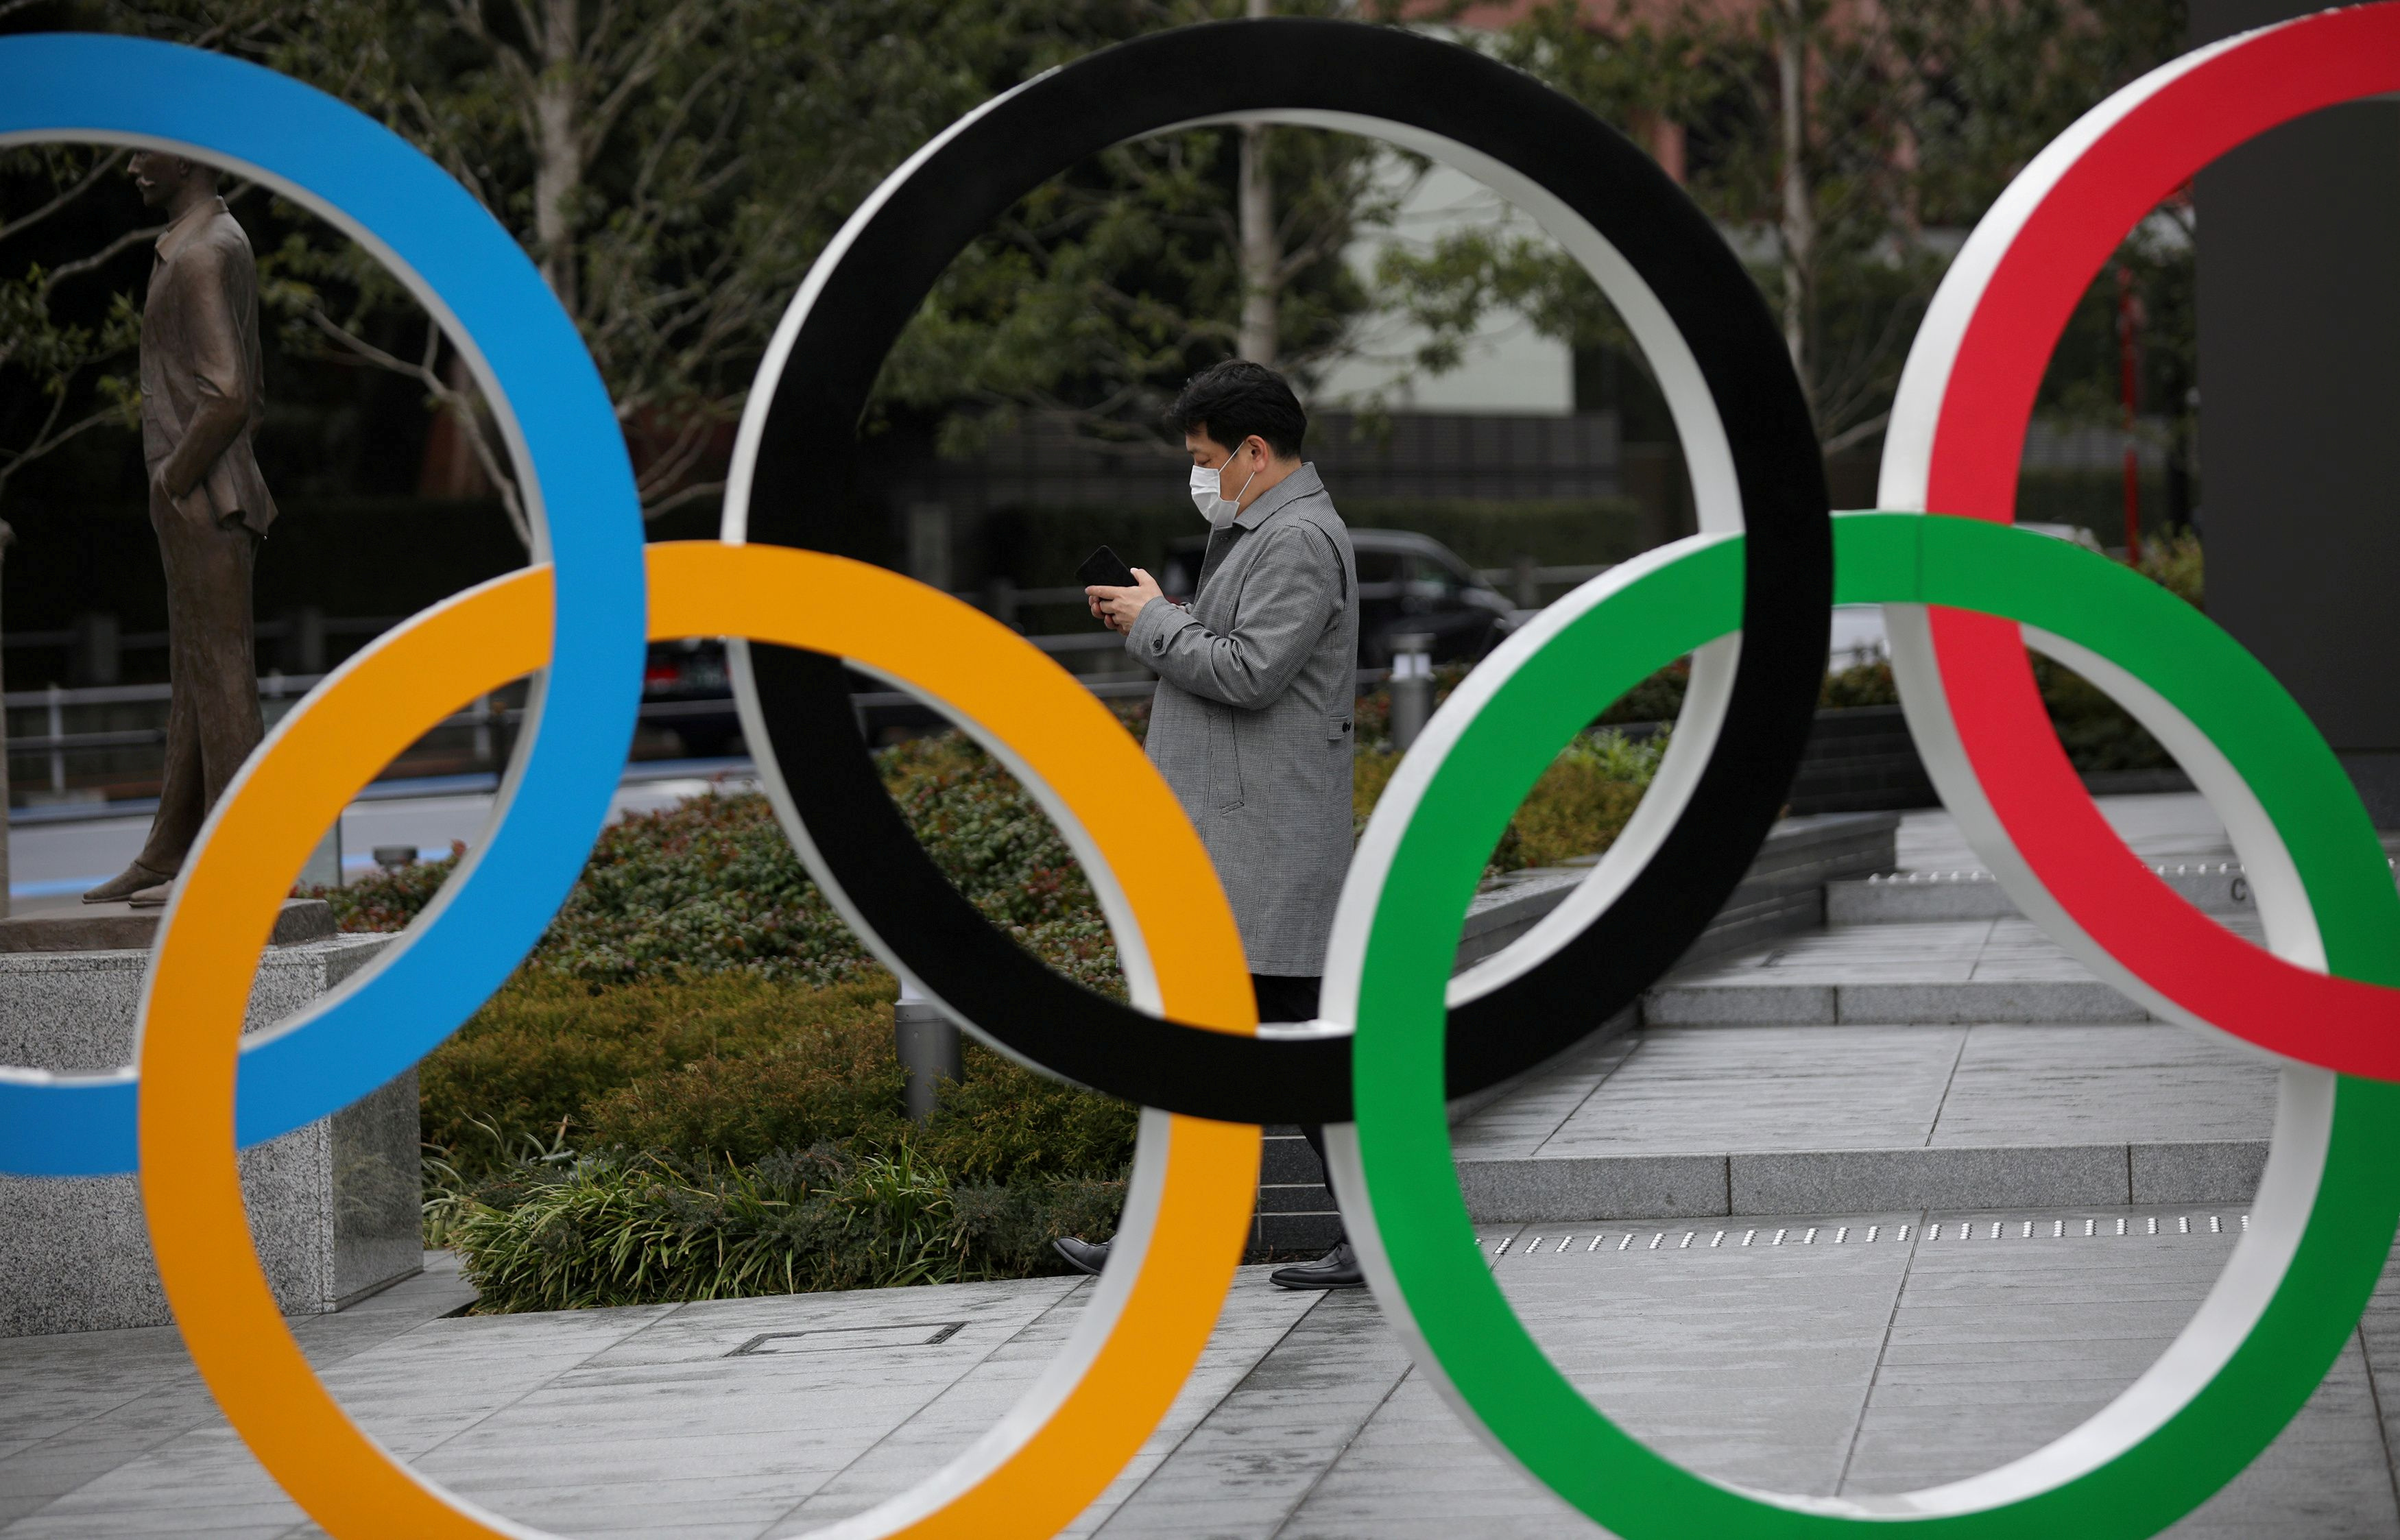 A man looks at his mobile phone next to The Olympic rings in front of the Japan Olympics Museum in Tokyo, Japan, March 4, 2020. REUTERS/Stoyan Nenov